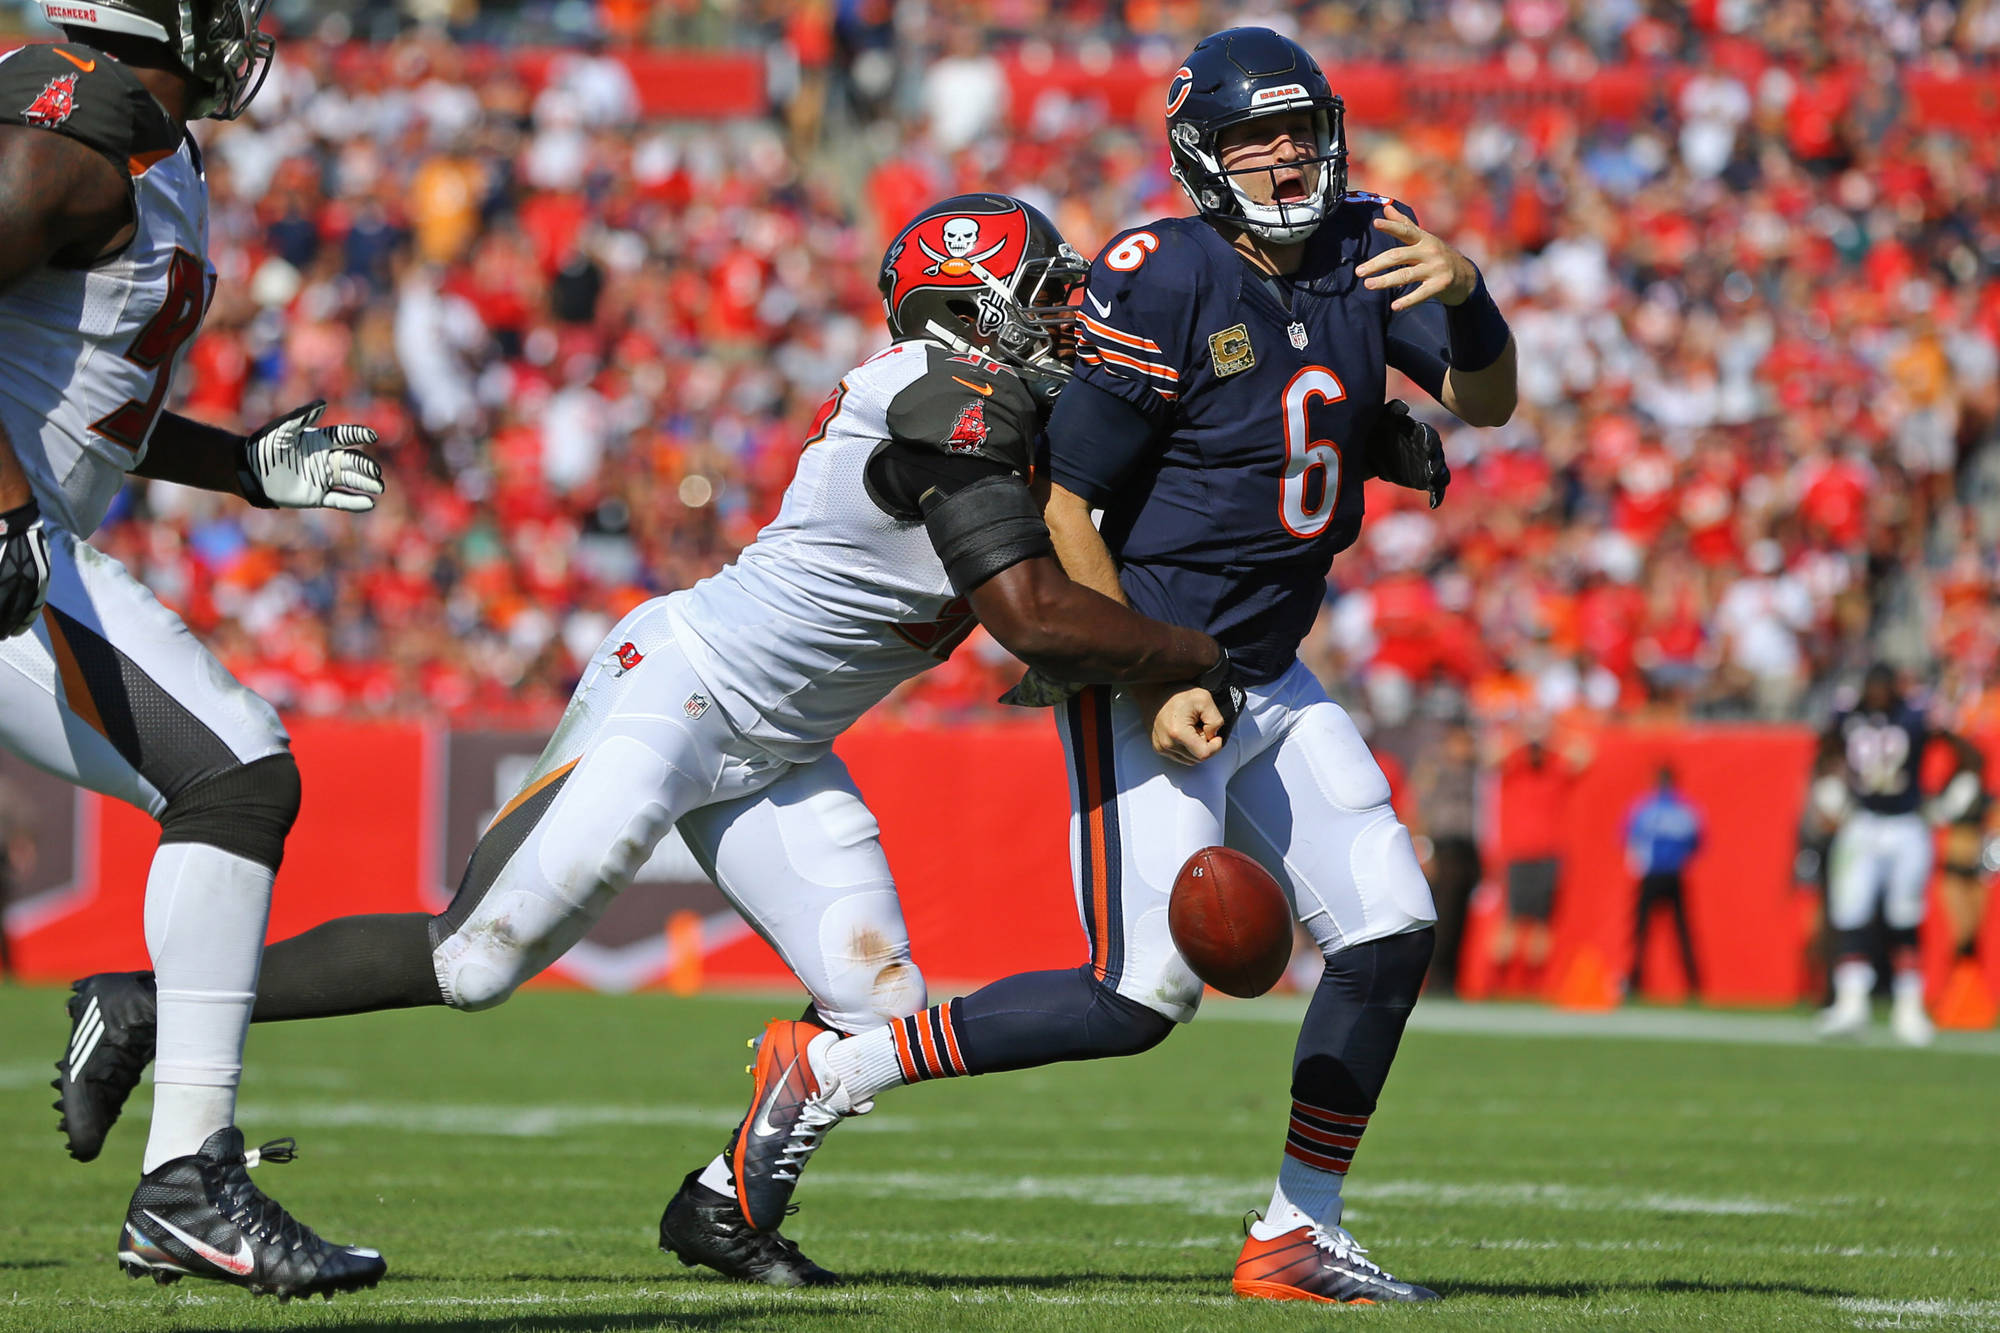 It's finally time to move on from Jay Cutler